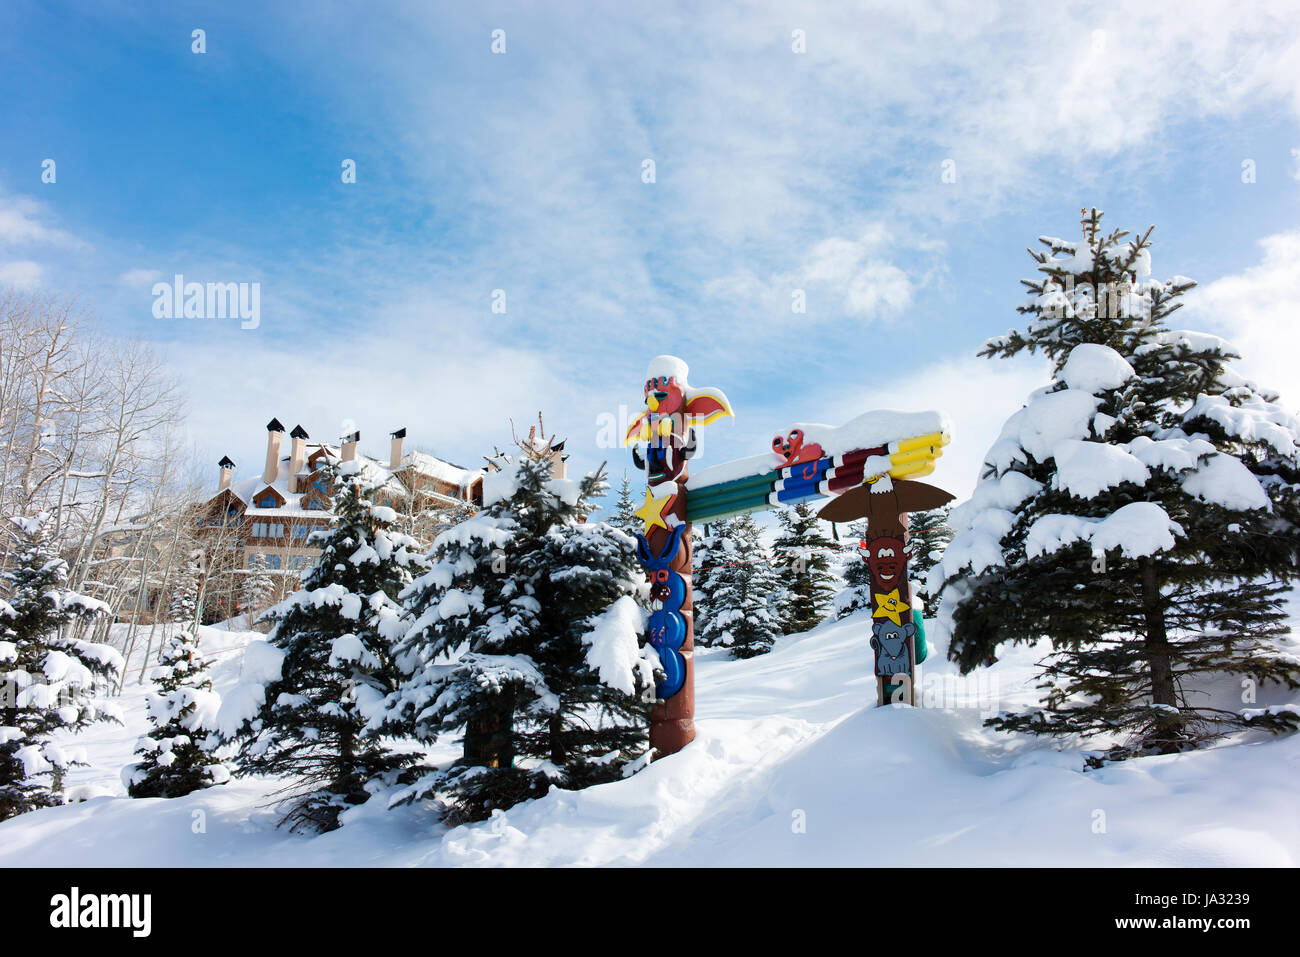 Totem poles and trees with fresh snow at Beaver Creek, a ski resort near Avon, Colorado. - Stock Image